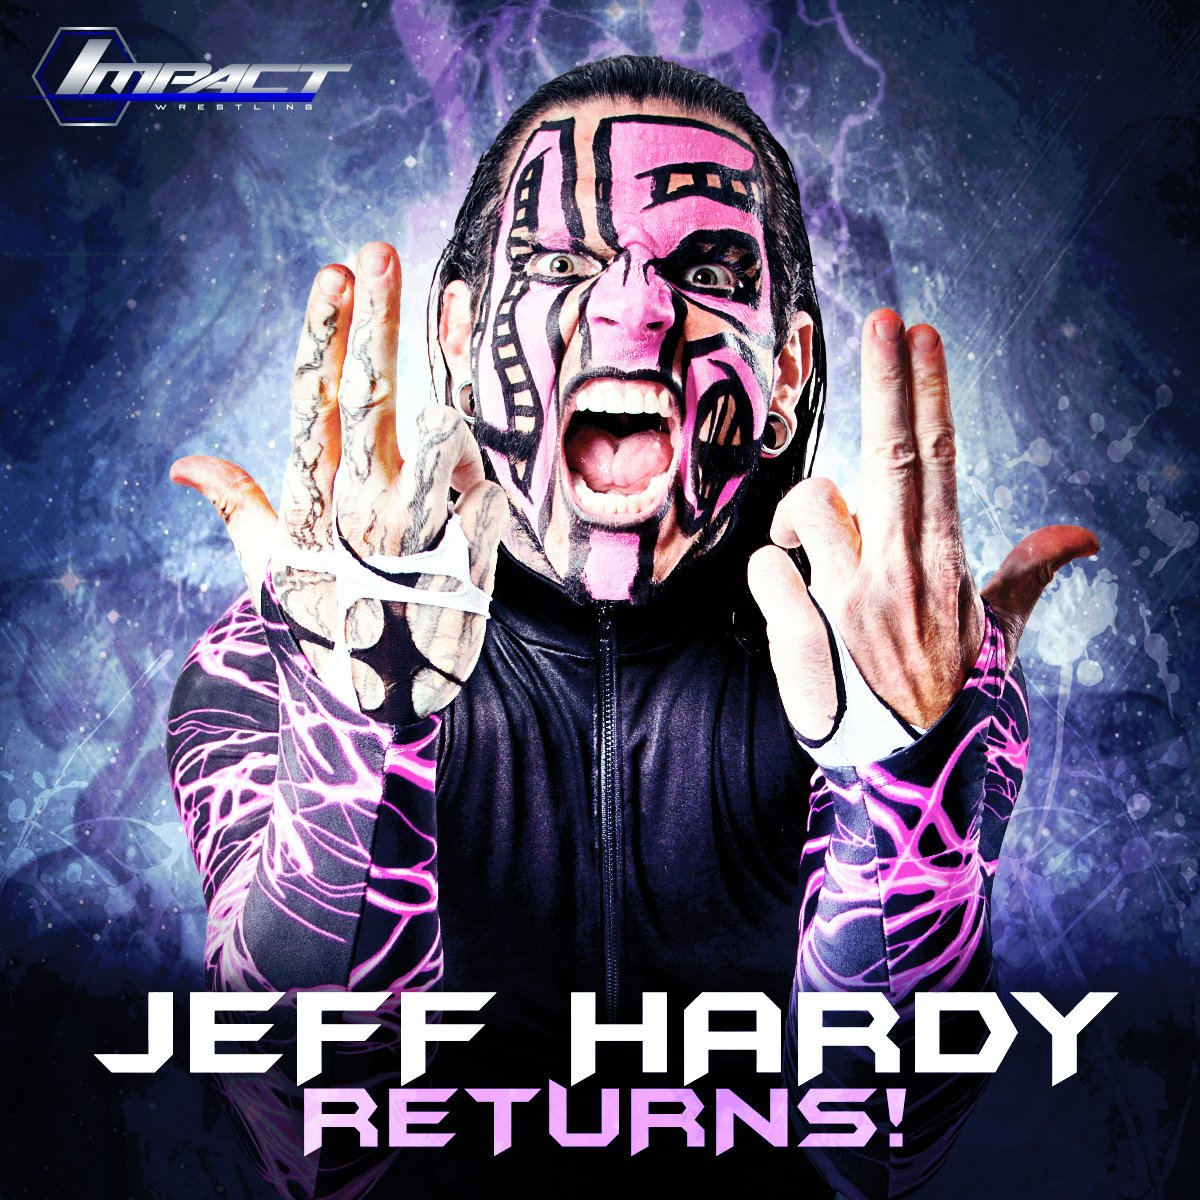 Tonight on another HUGE @IMPACTWRESTLING show. The legend that is @JEFFHARDYBRAND returns!! https://t.co/HmG4ySAp4b https://t.co/JHa1P491Hq